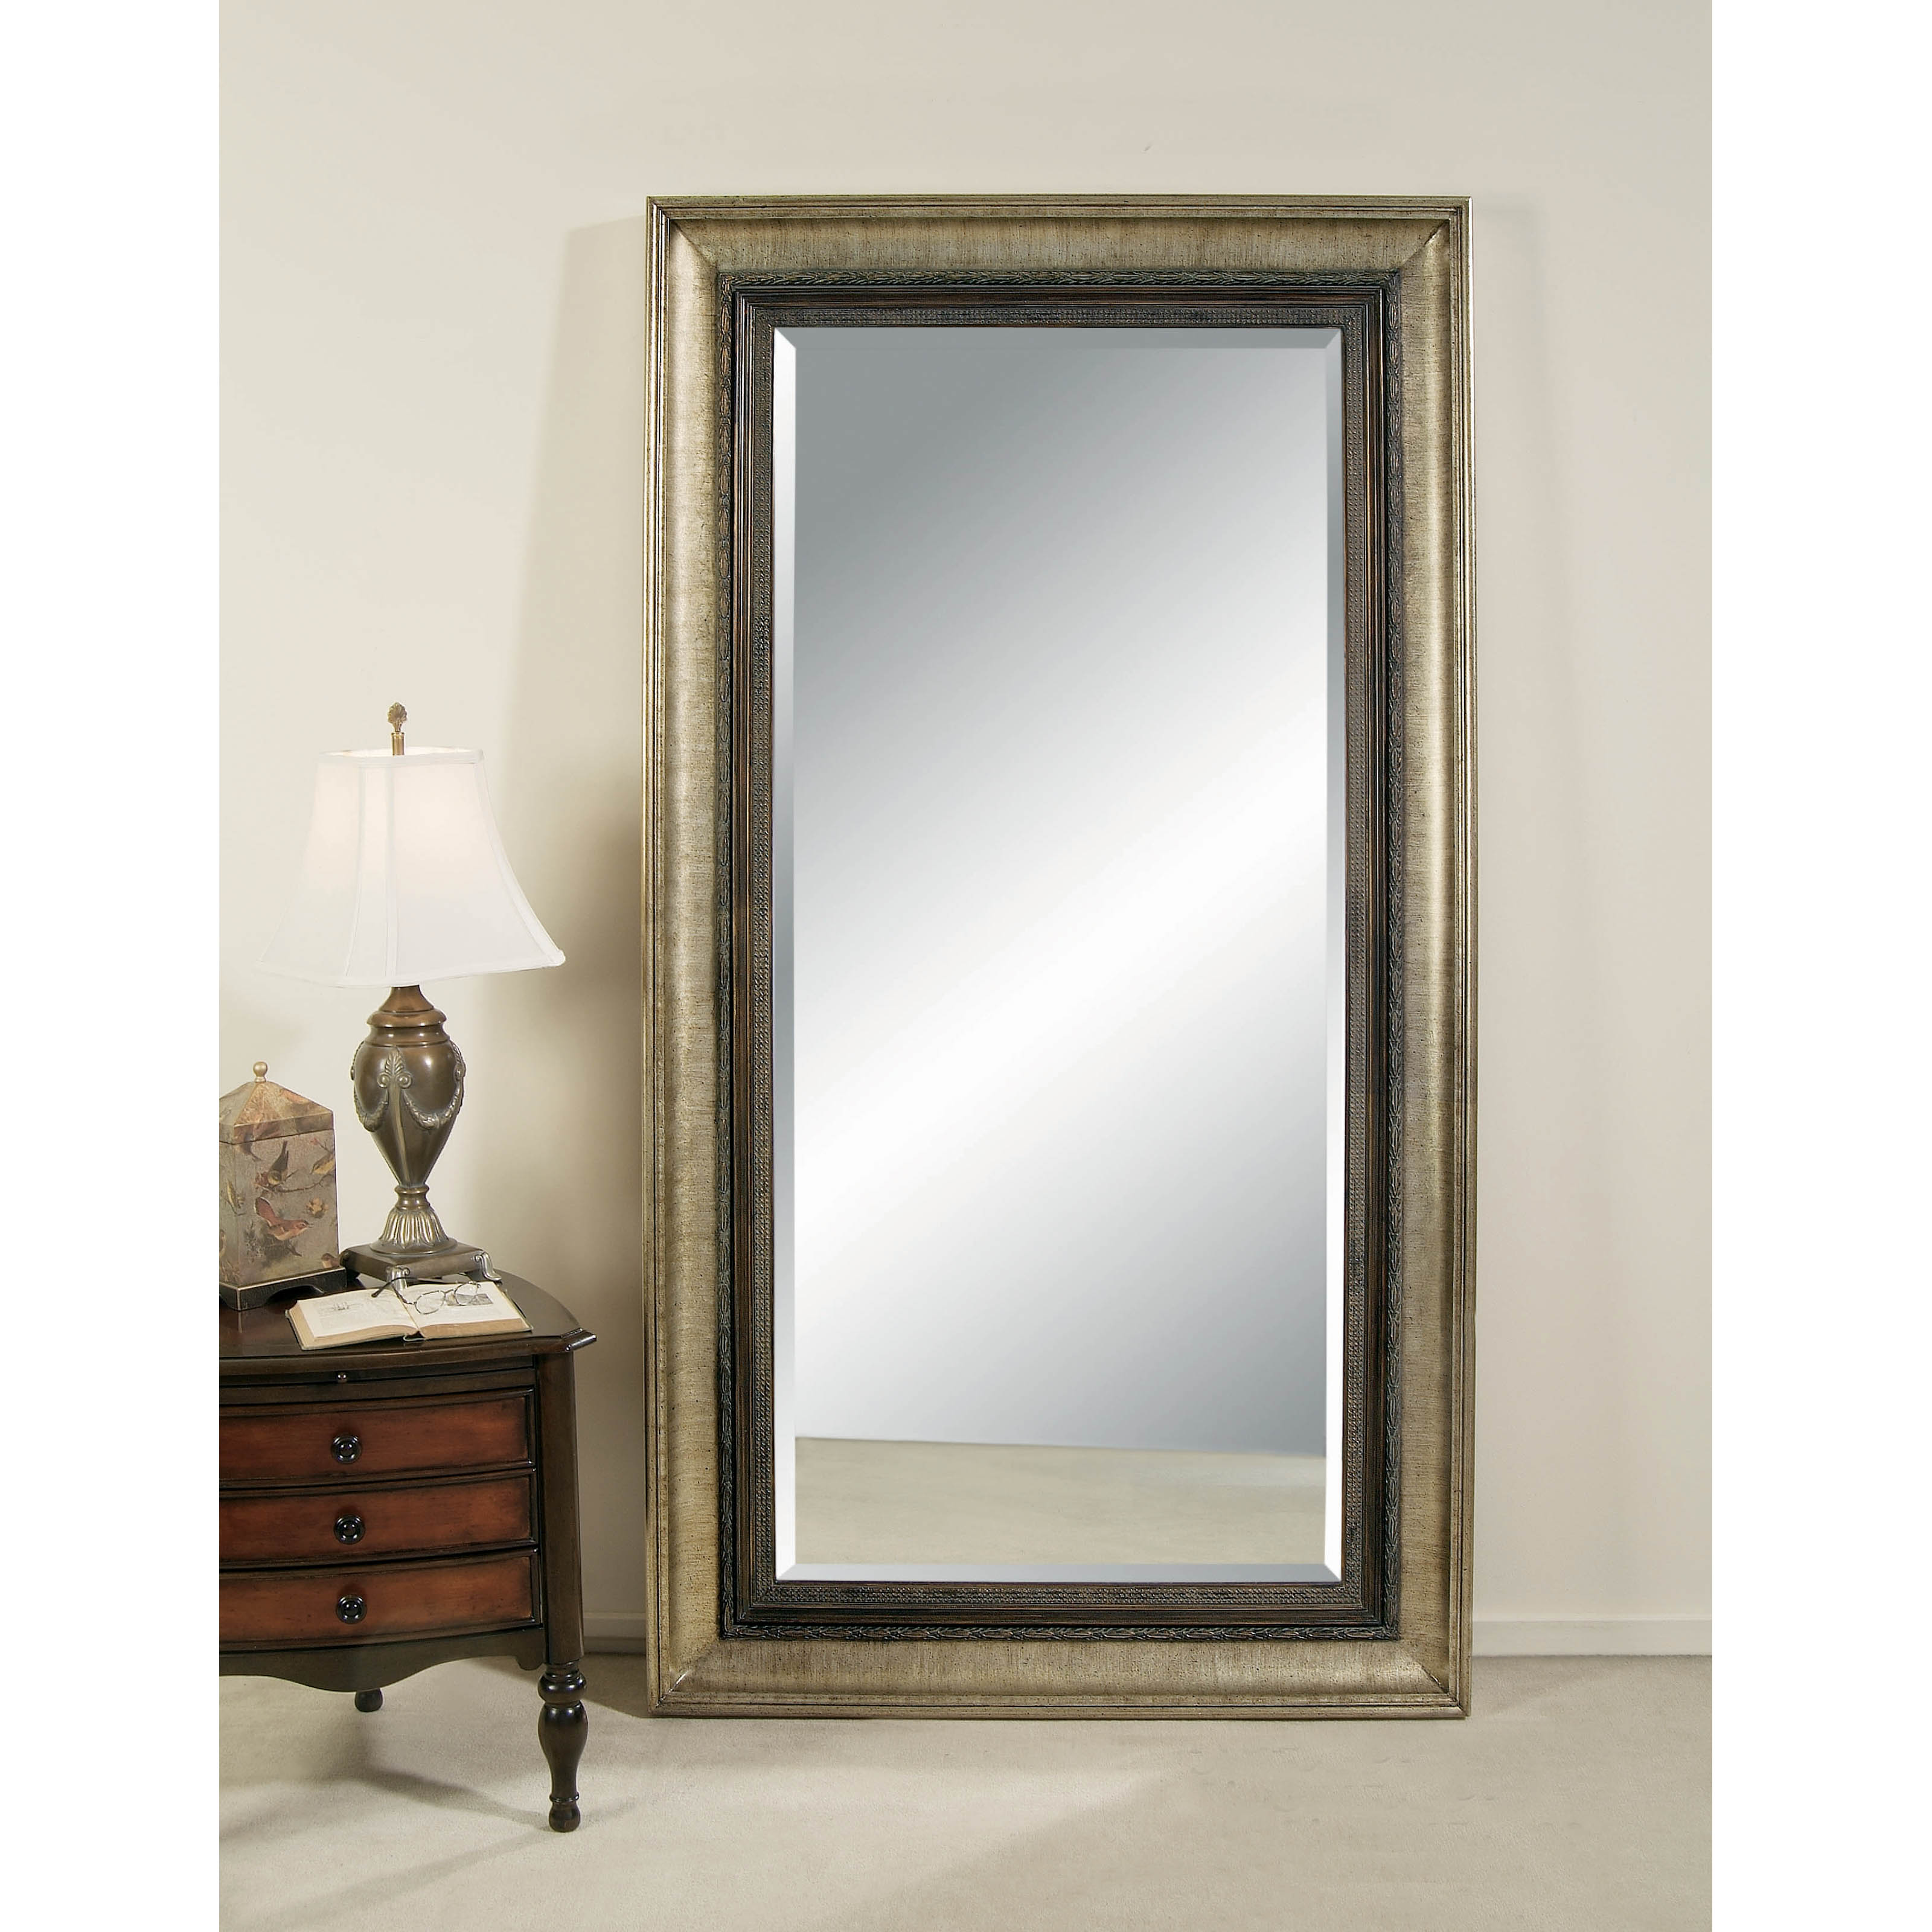 Portia Leaning Wall Mirror - 45W x 83H in. at Hayneedle